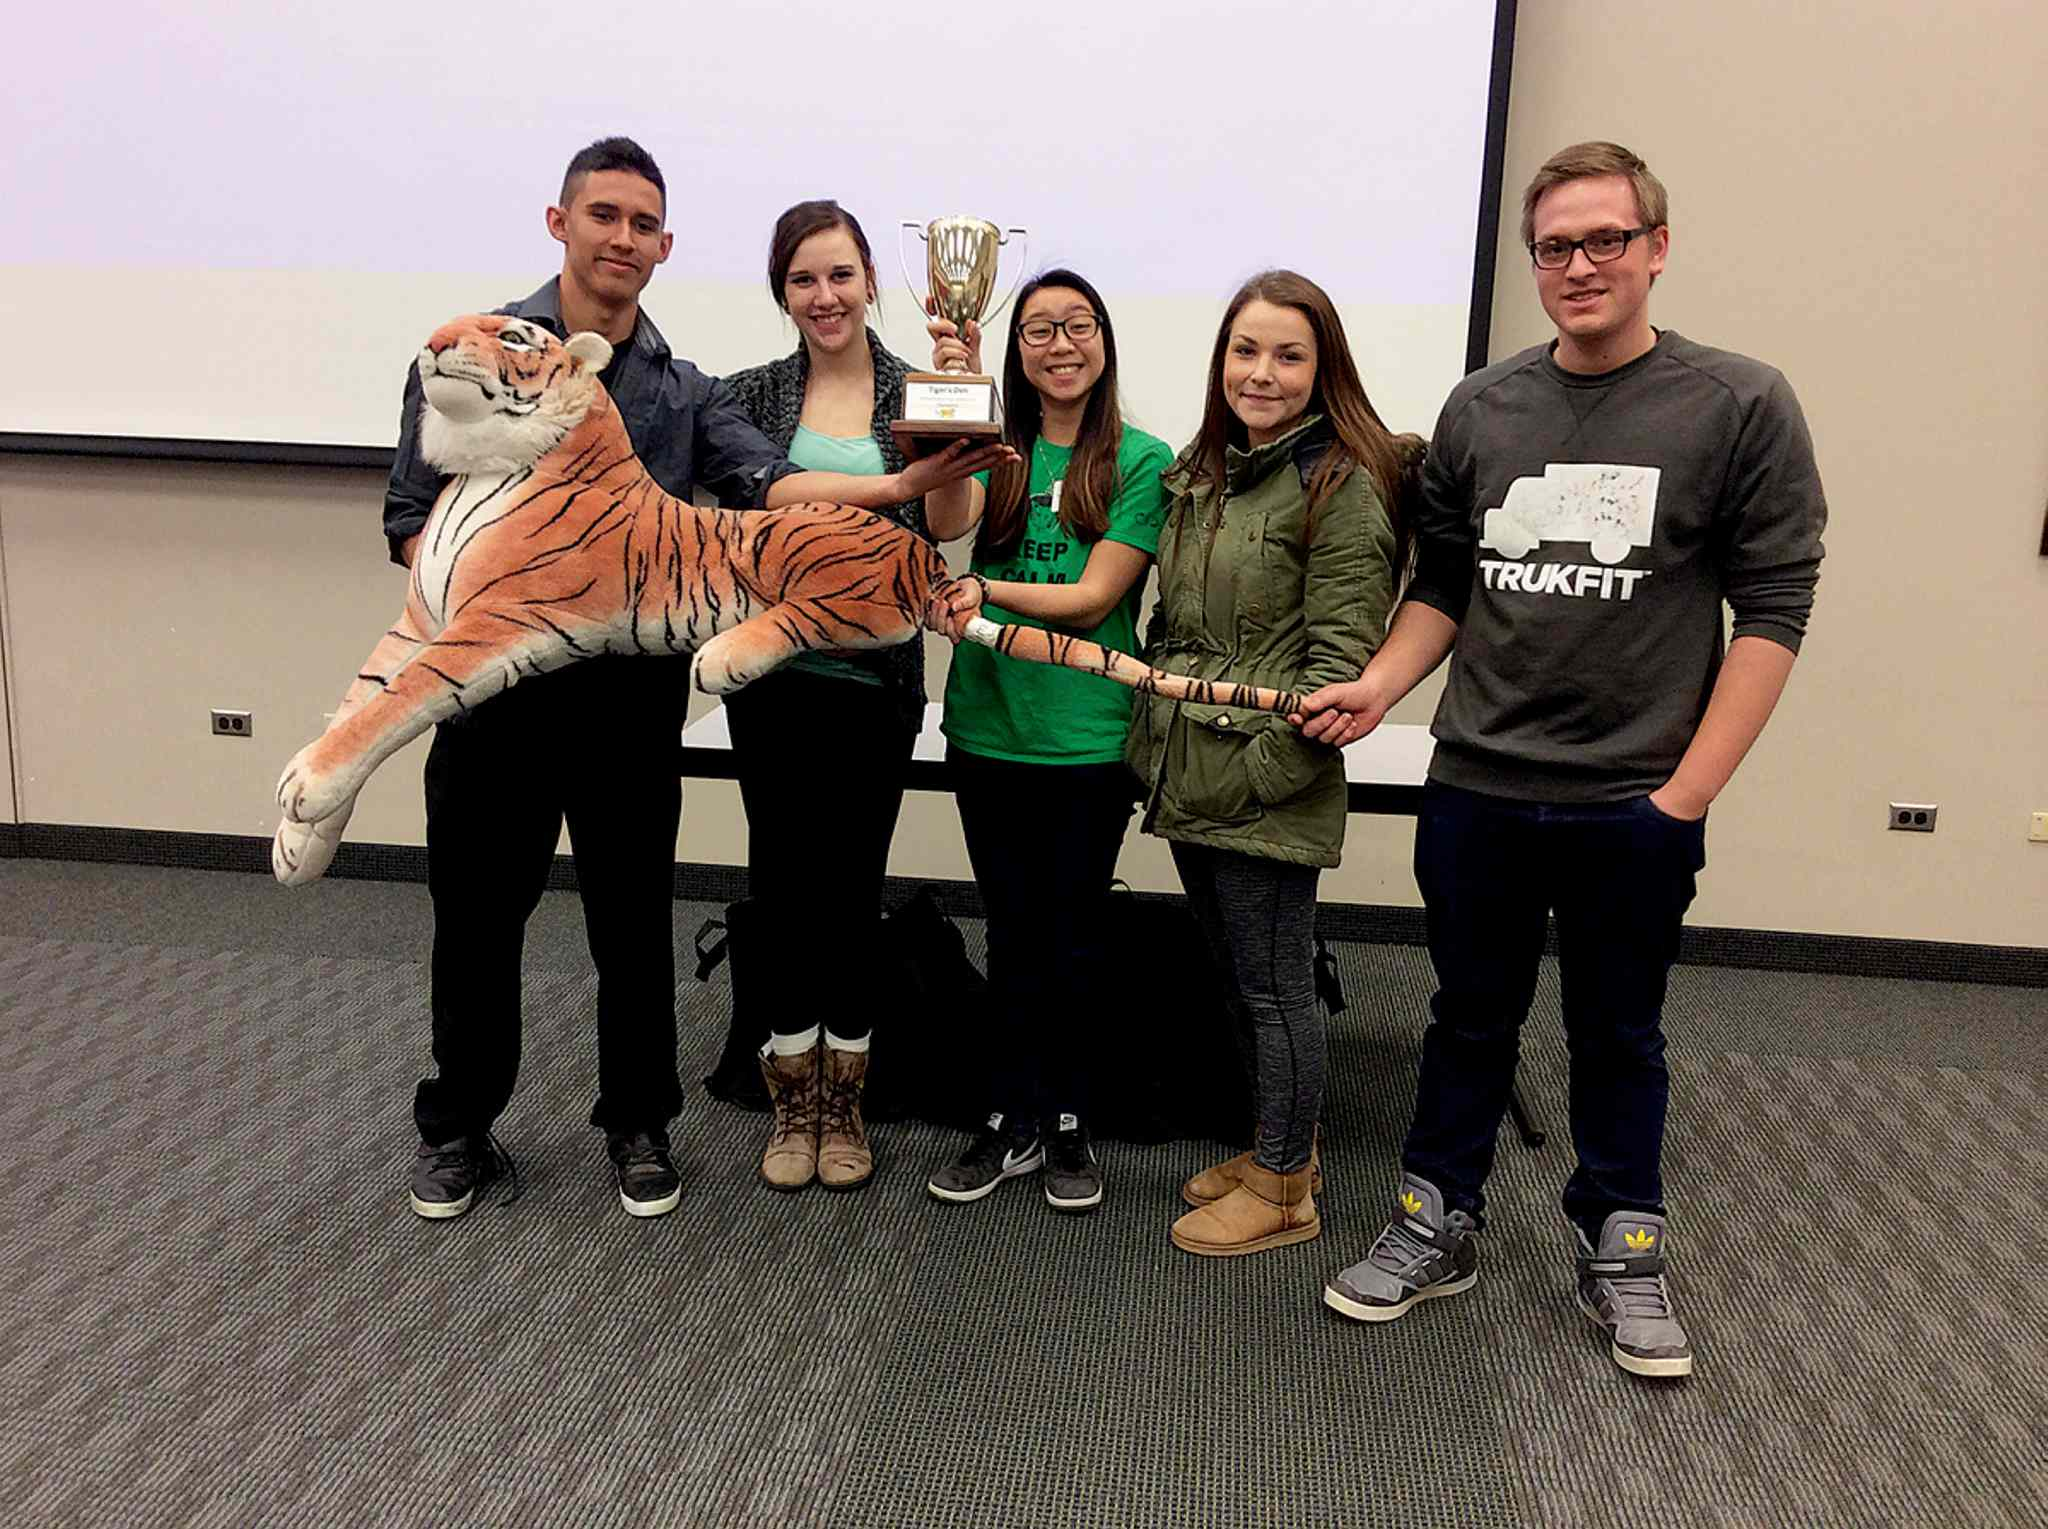 First place winners in Louis Riel School Division's Tiger's Den Entrepreneurship and Innovation conference was True Food, an organic fast food restaurant created by the team of (from left): Jordan Shannon (Windsor Park Collegiate); Stacey Fortney (Windsor Park); Jenny Nguyen (Windsor Park); Michelle Richard (Dakota Collegiate); Evan Duplak (River East Collegiate).